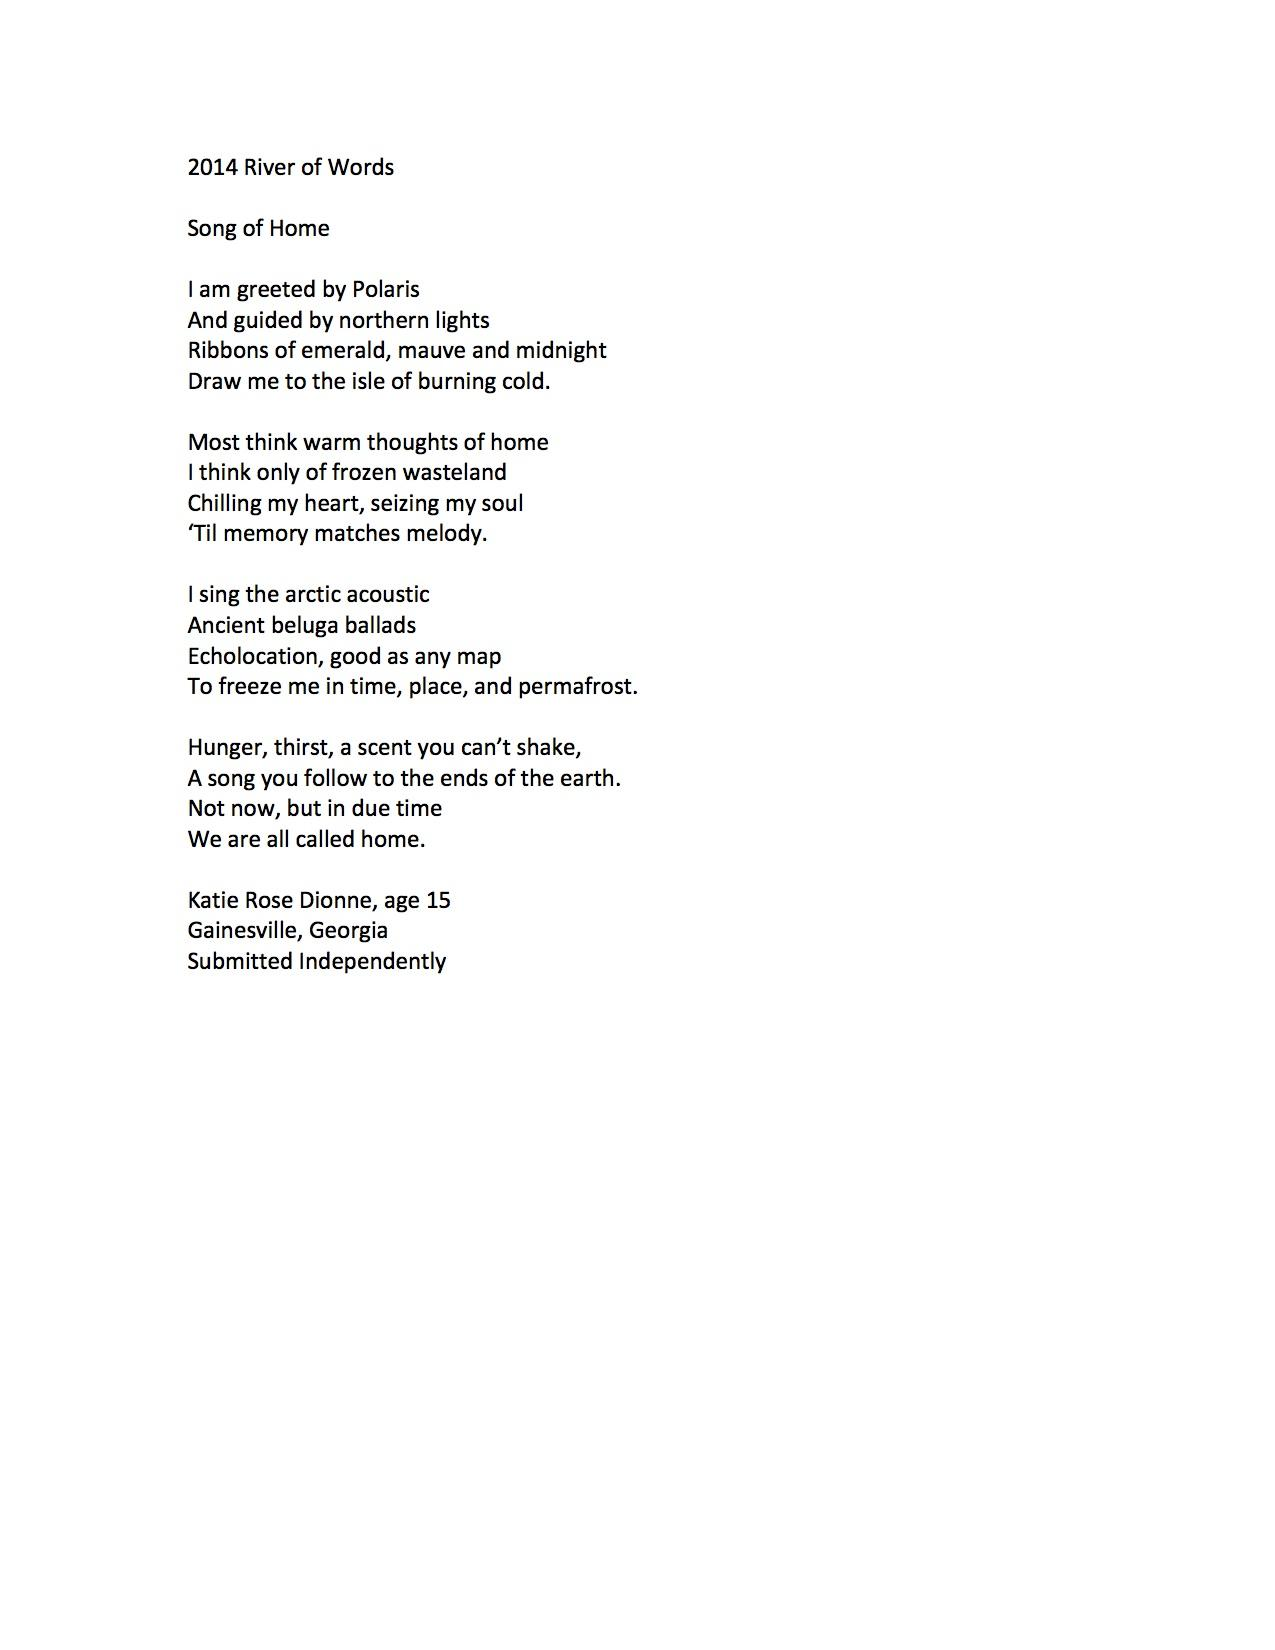 """Song of Home"" by Katie Rose Dionne (c) 2014 River of Words"